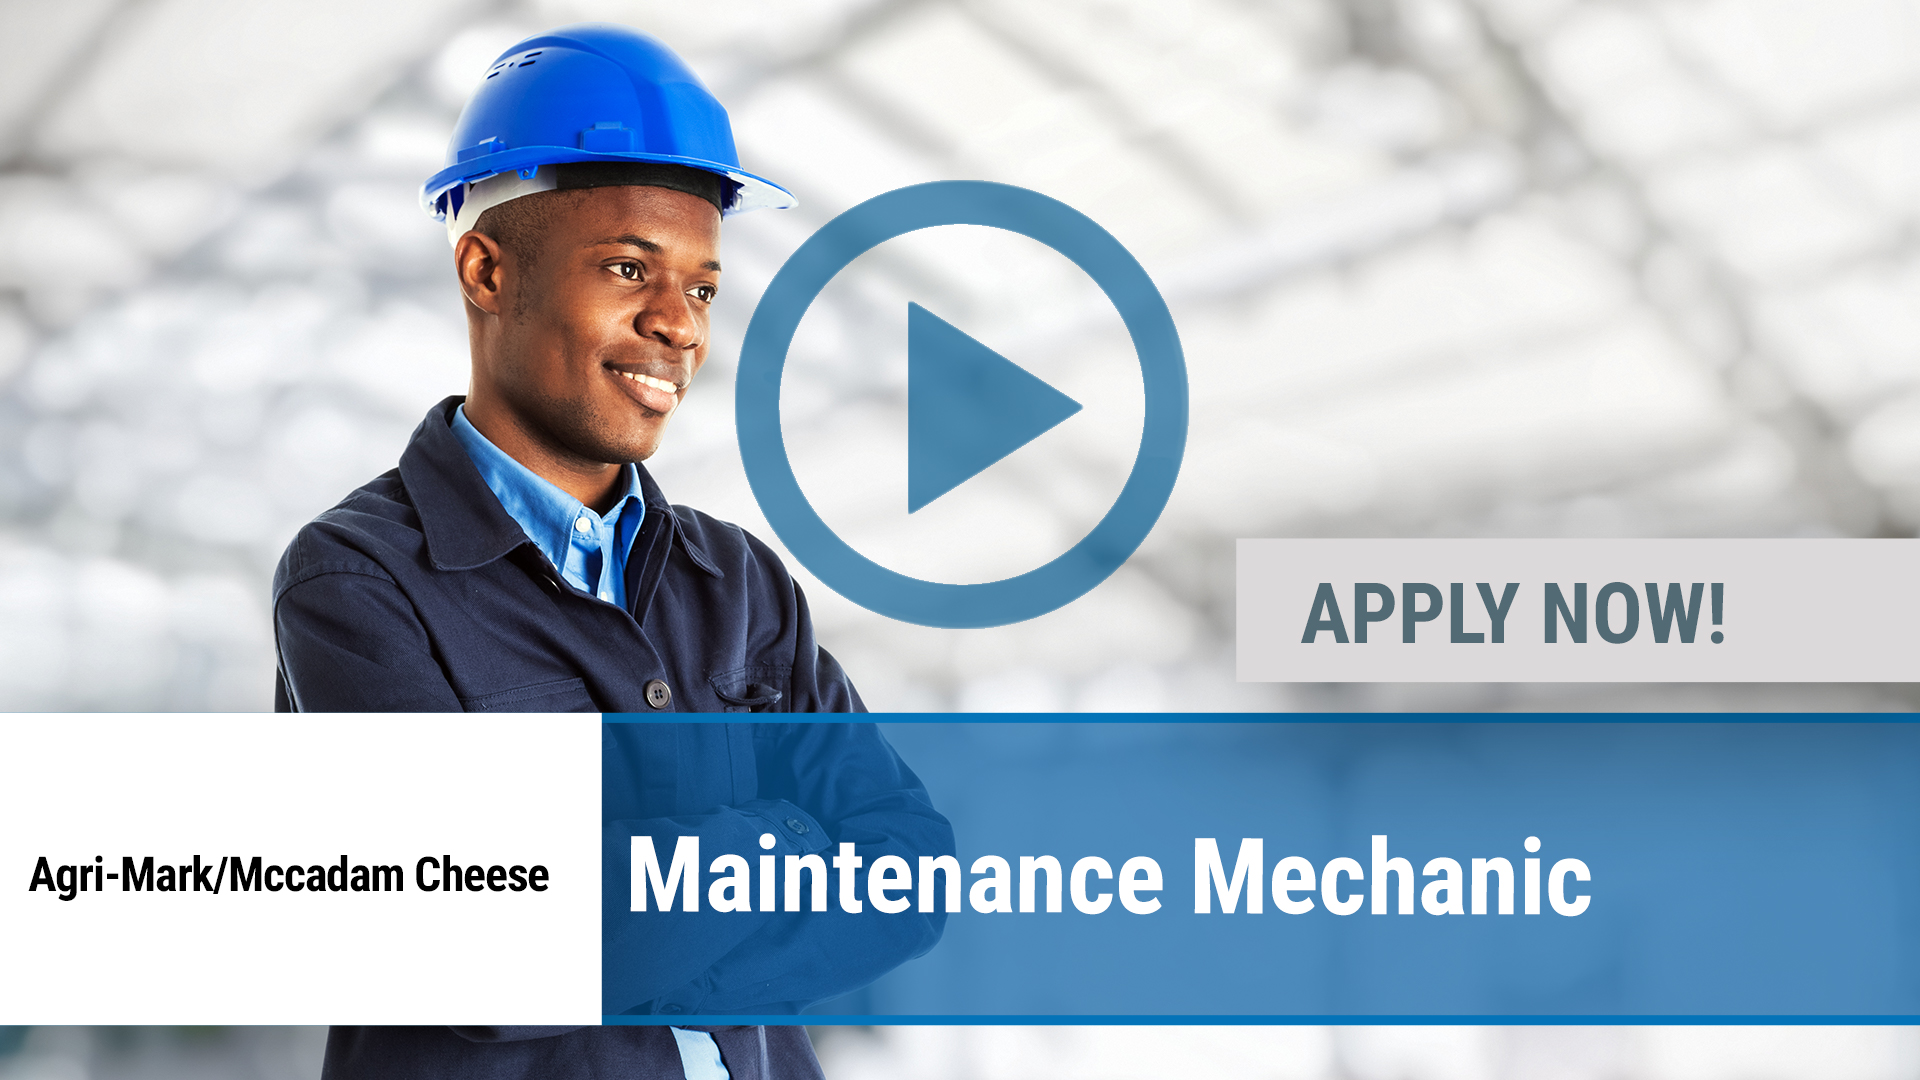 Watch our careers video for available job opening Maintenance Mechanic in Chateaugay, NY